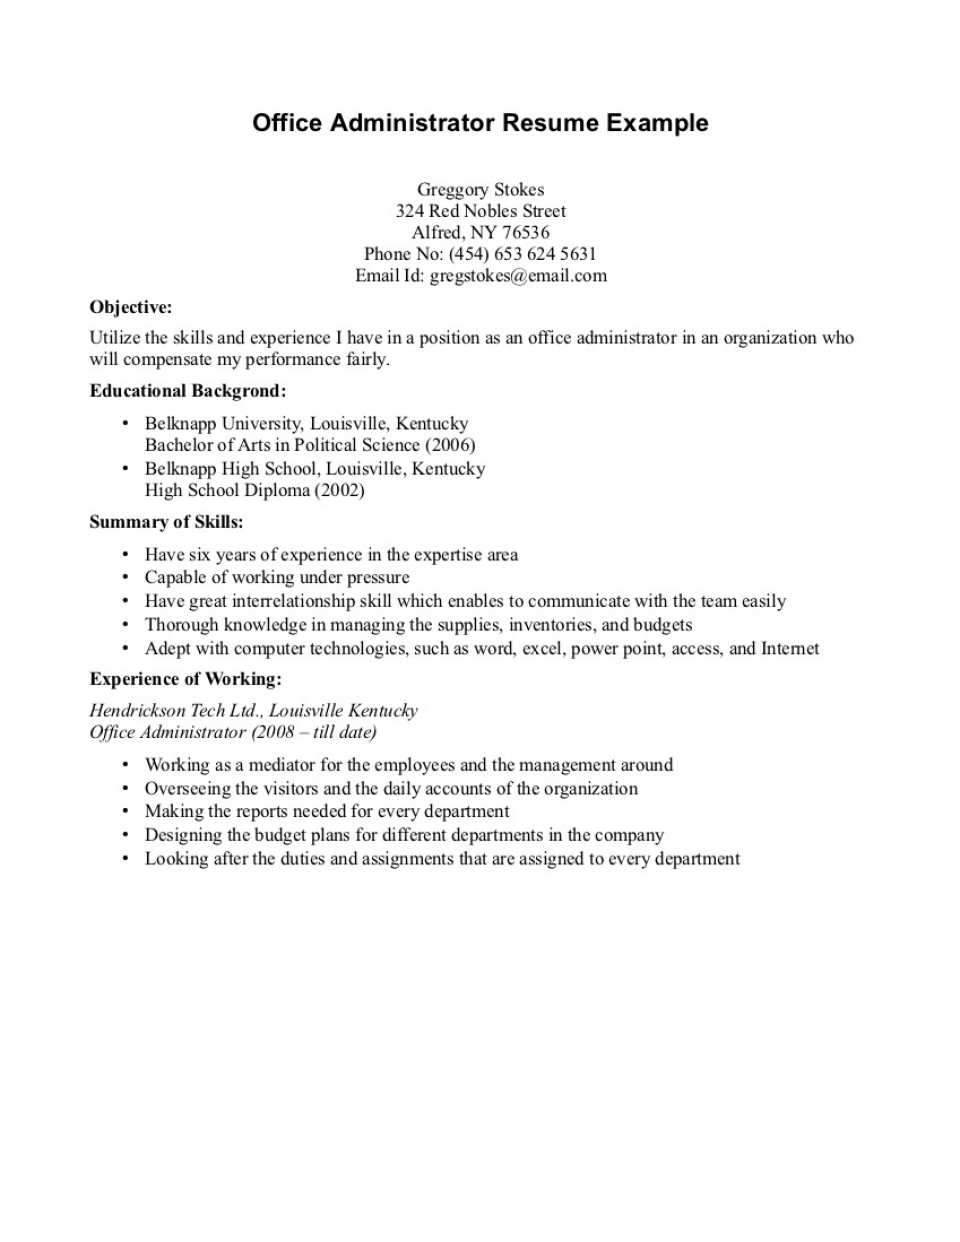 020 Essay Example High School Experience Free Sample Resumes With No Work Cv For Year Old Leaver Dreaded 960